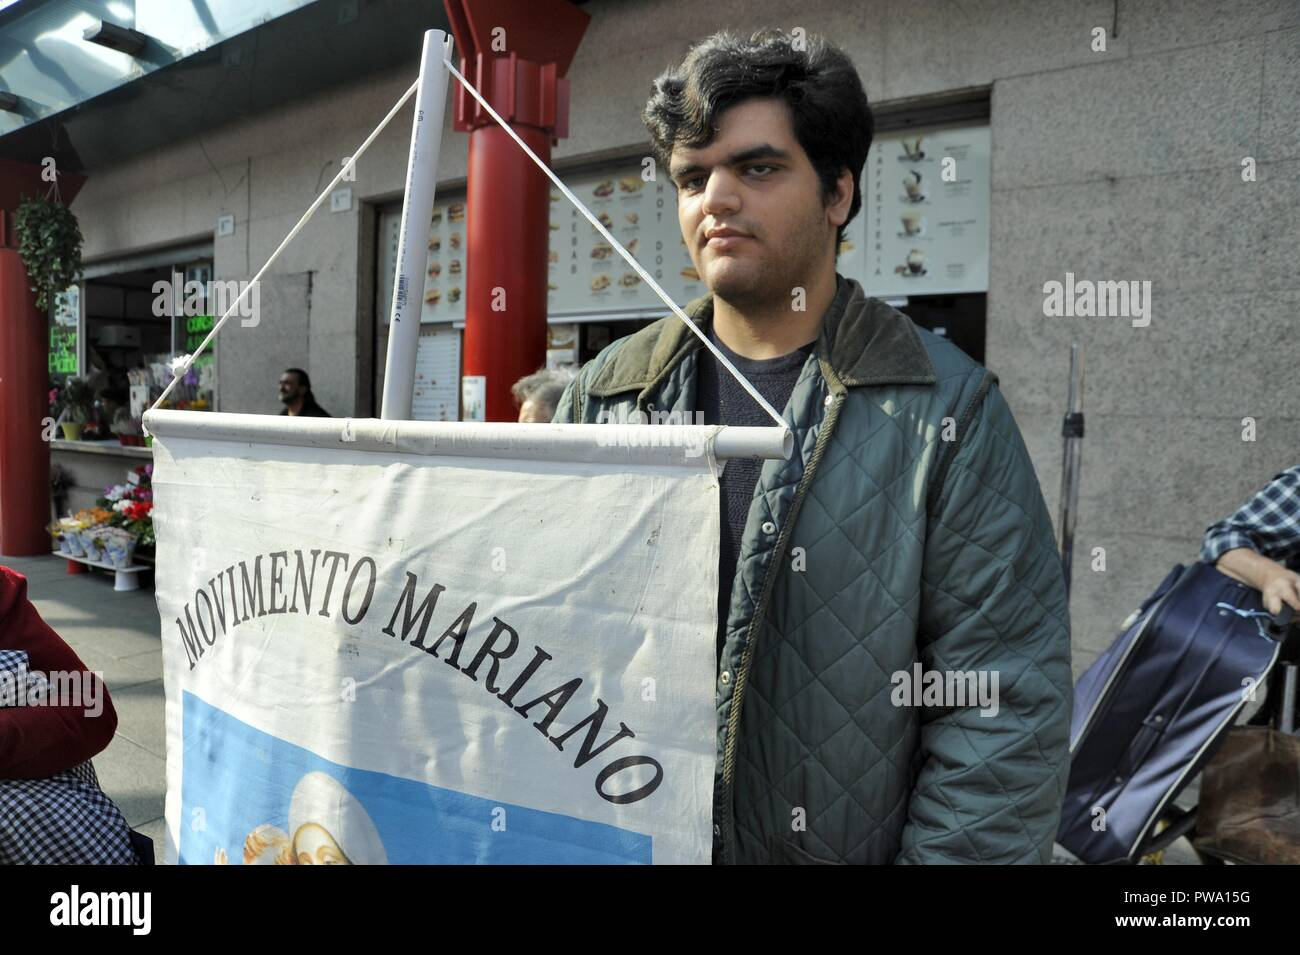 Milan (Italy), demonstration of catholics extremists and neo-fascist party Forza Nuova against the law 194 on abortion. - Stock Image